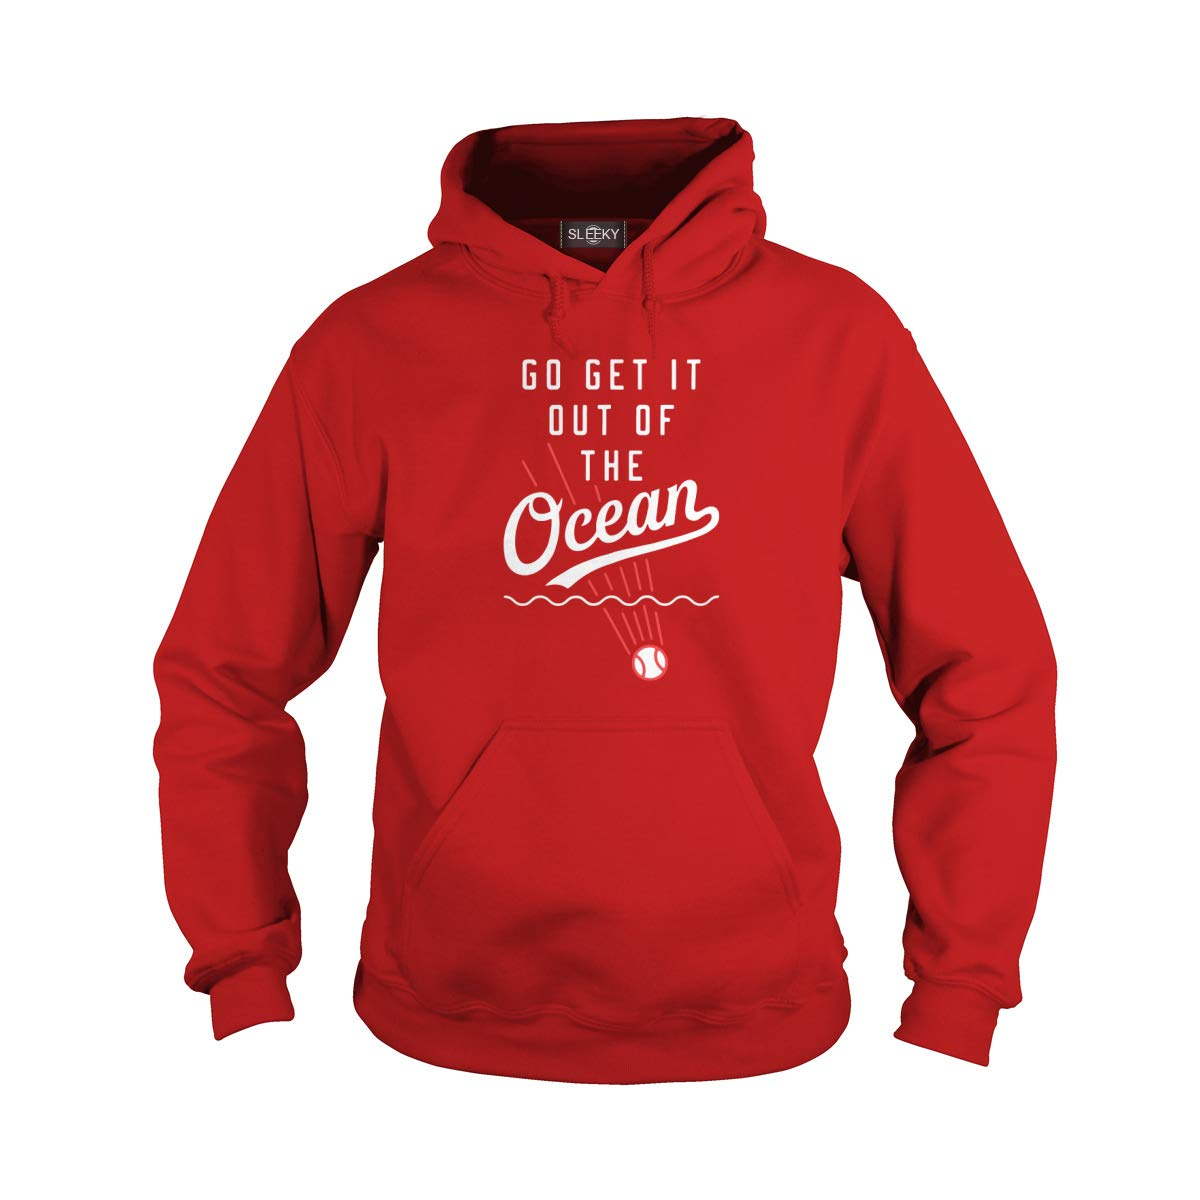 Unisex Go Get It Out The Ocean Adult Hooded Sweatshirt M, Red